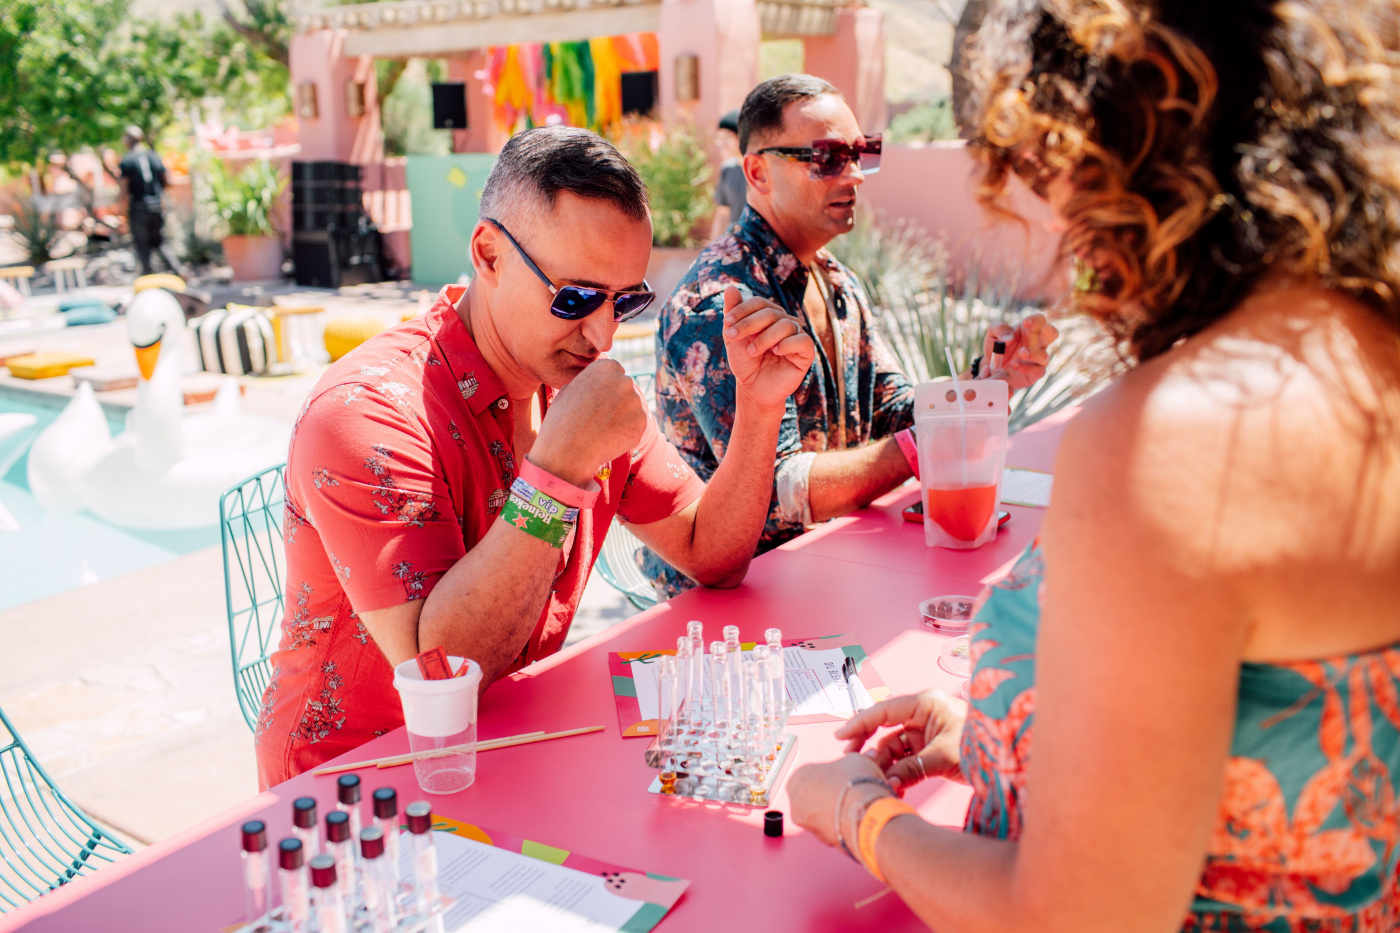 Instagram Debuts First-Ever Coachella Activation With Experiential Playground